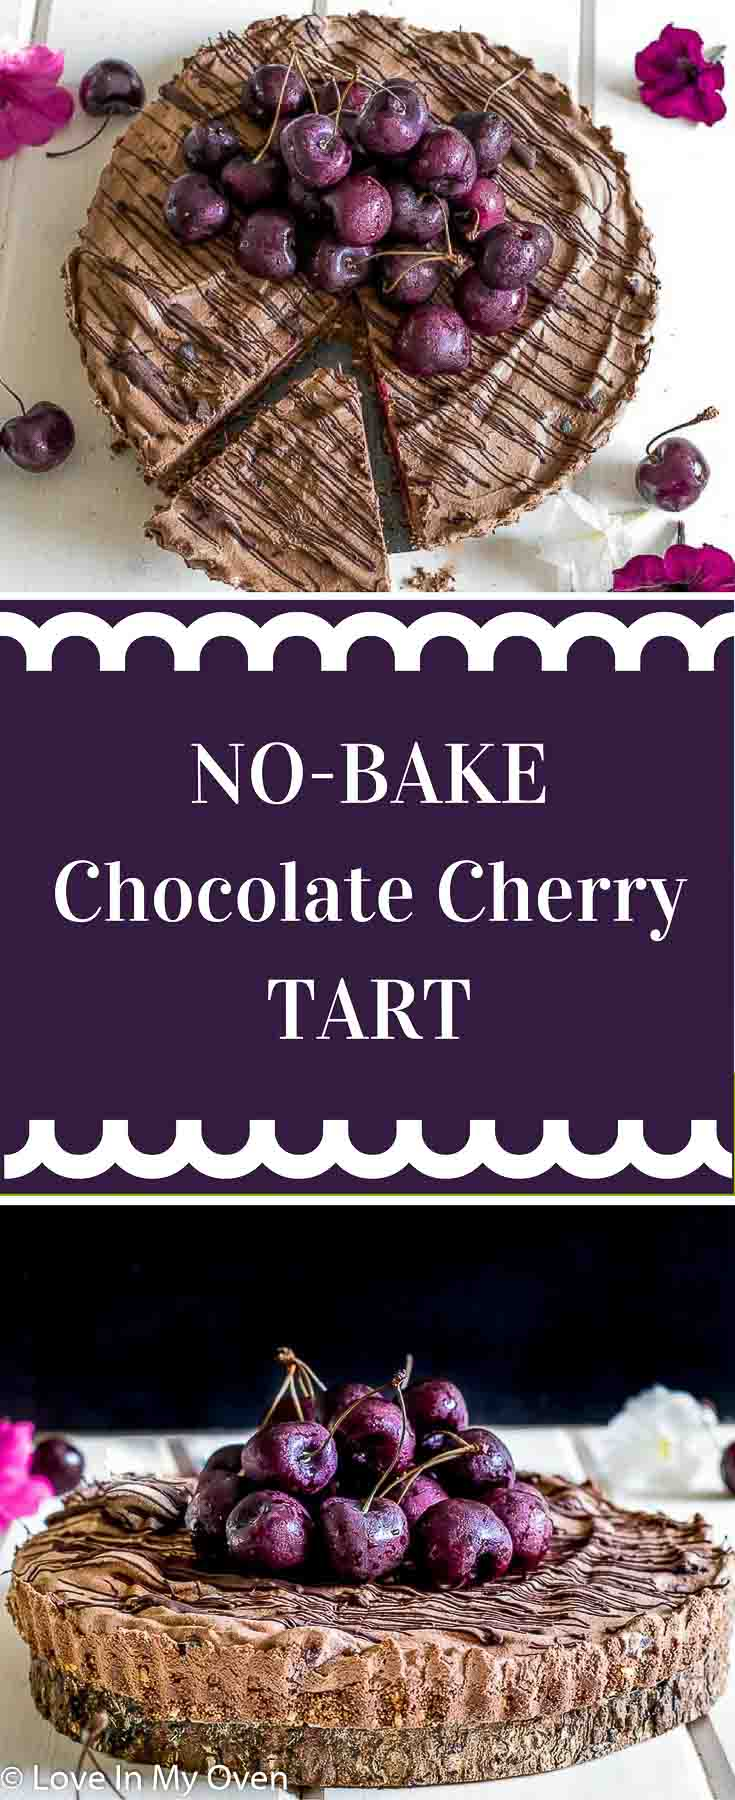 A fluffy, velvety, no-bake chocolate tart filled with fresh cherries and made with achocolate graham cracker crust. The perfect summer dessert!